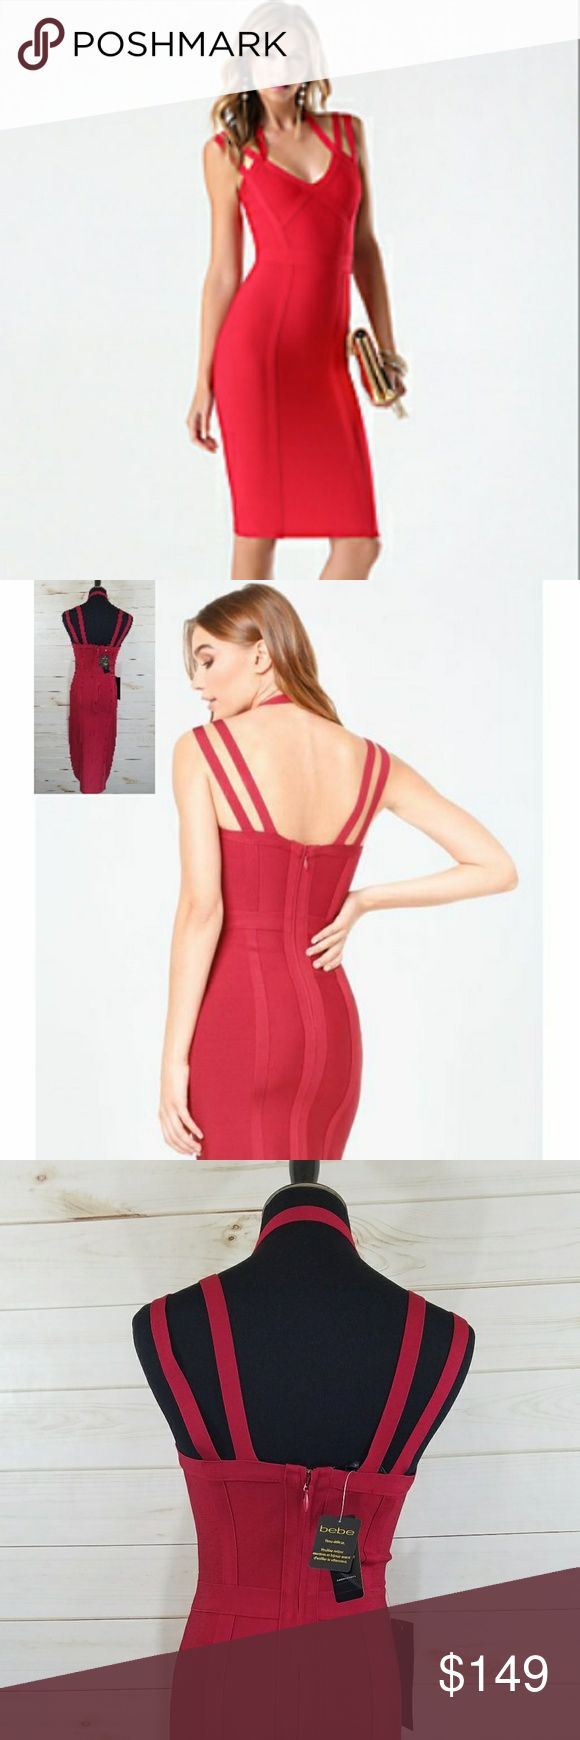 "Bebe *Stunning* Strappy Red Bandage Dress Sale! This Heart Attack Inducing Stunning Bebe Red Bandage Dress Will Turn Heads And Melt Hearts!!!. Sexy, triple strapped club or cocktail dress in a midi length. This dress shows off every curve you want seen. Hidden zipper. Brand New With Tags!!!  86% Rayon, 14% spandex  Hand wash  Imported  Center back to hem: 29"" (74 cm) bebe Dresses Midi"